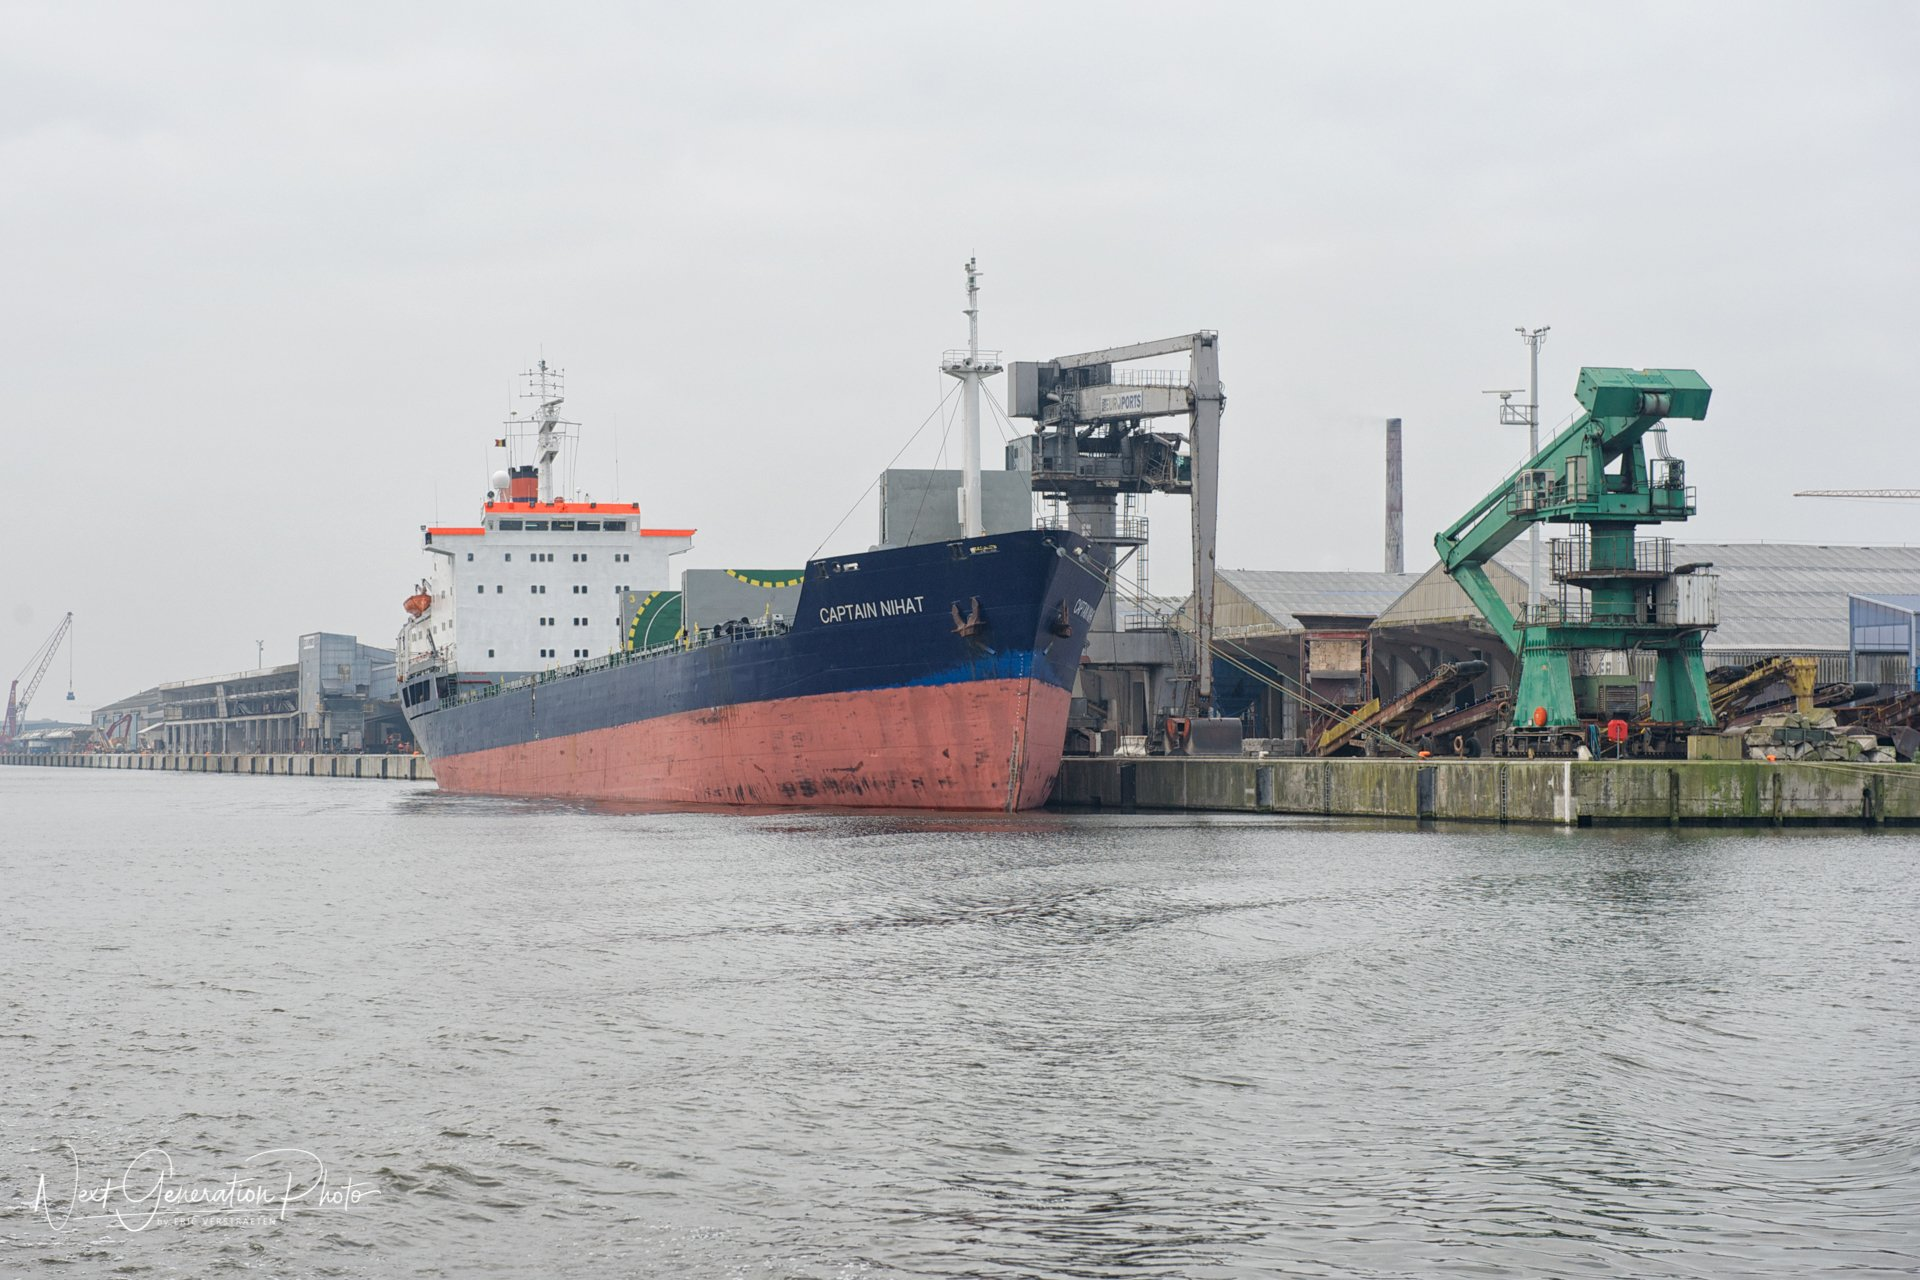 Captain Nihat, Grootdok - Port of Ghent 2014-04-05 (1)